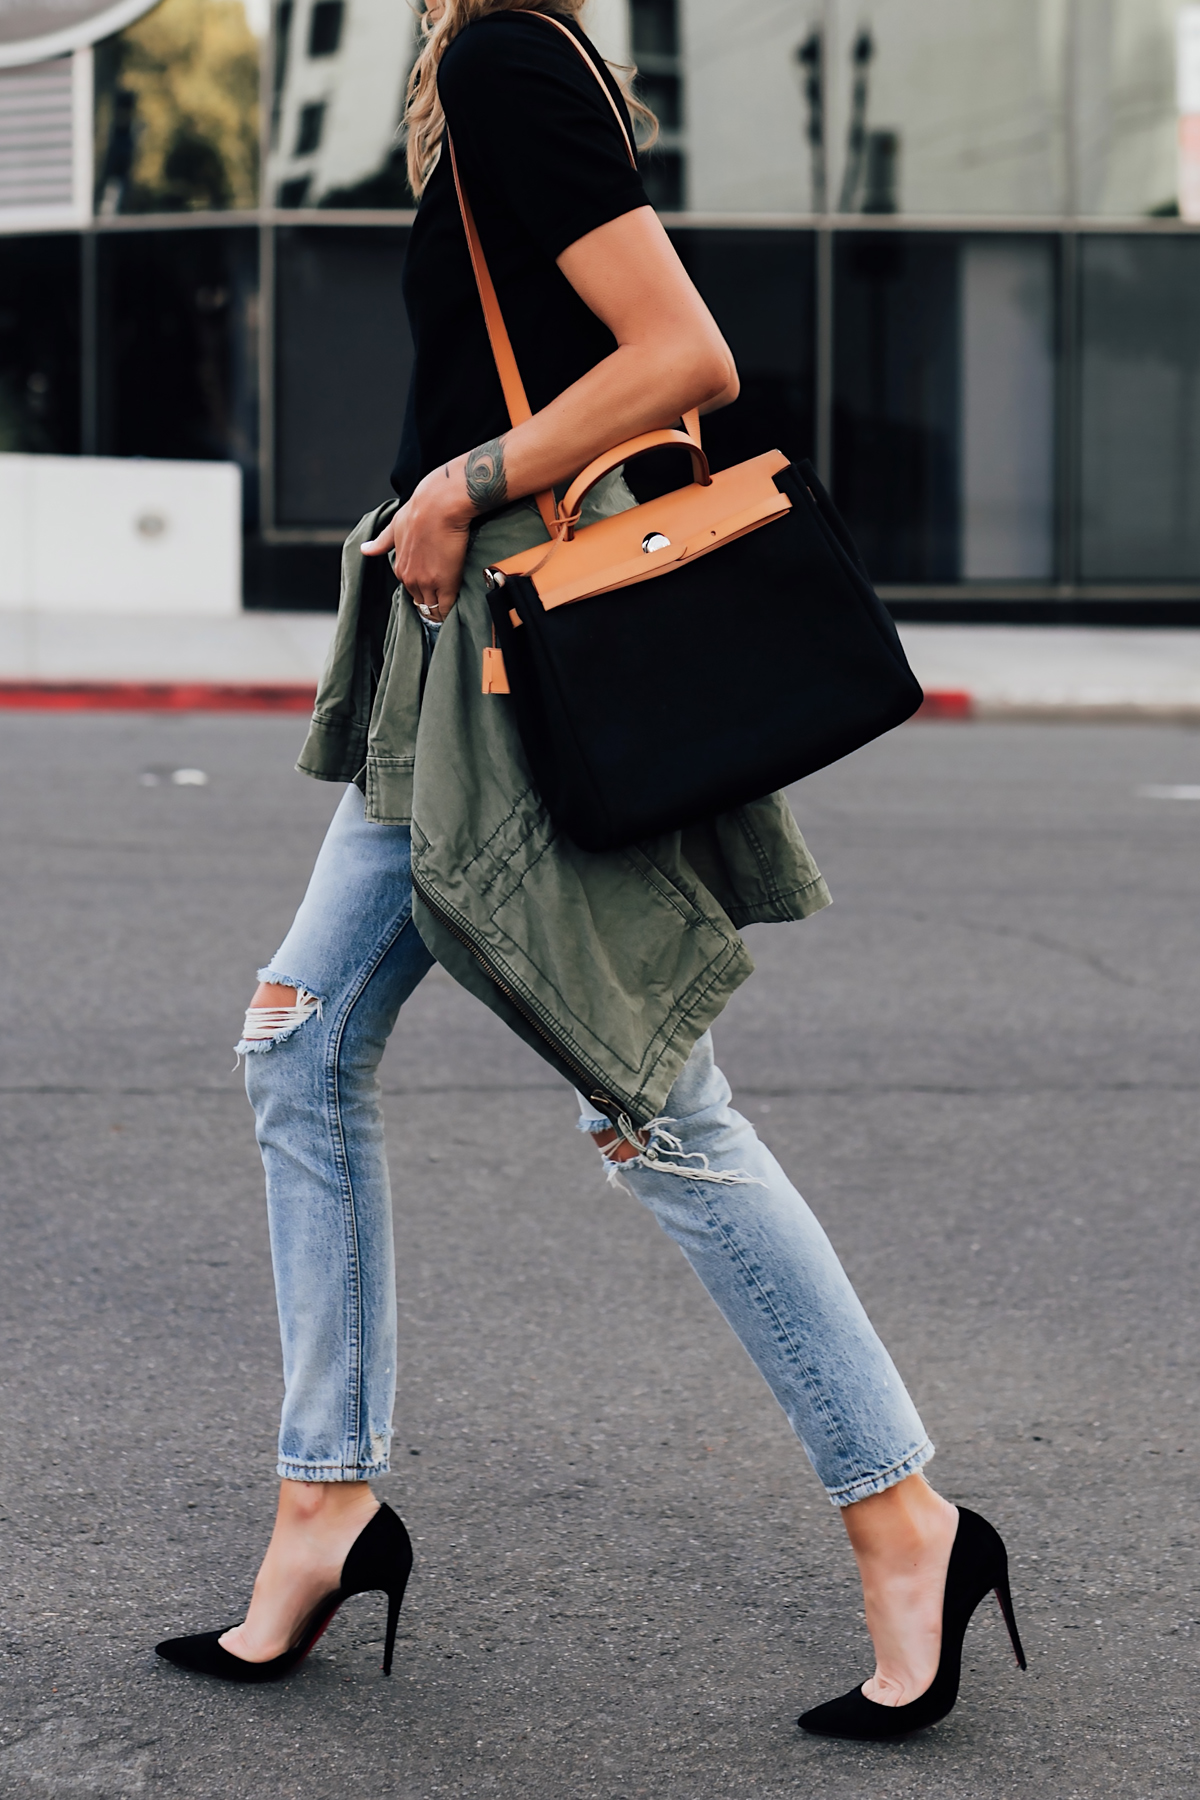 Woman Wearing Short Sleeve Black Top Denim Ripped Skinny Jeans Black Pumps Green Utility Jacket Vintage Hermes Herbag Black Tan Handbag Fashion Jackson San Diego Fashion Blogger Street Style